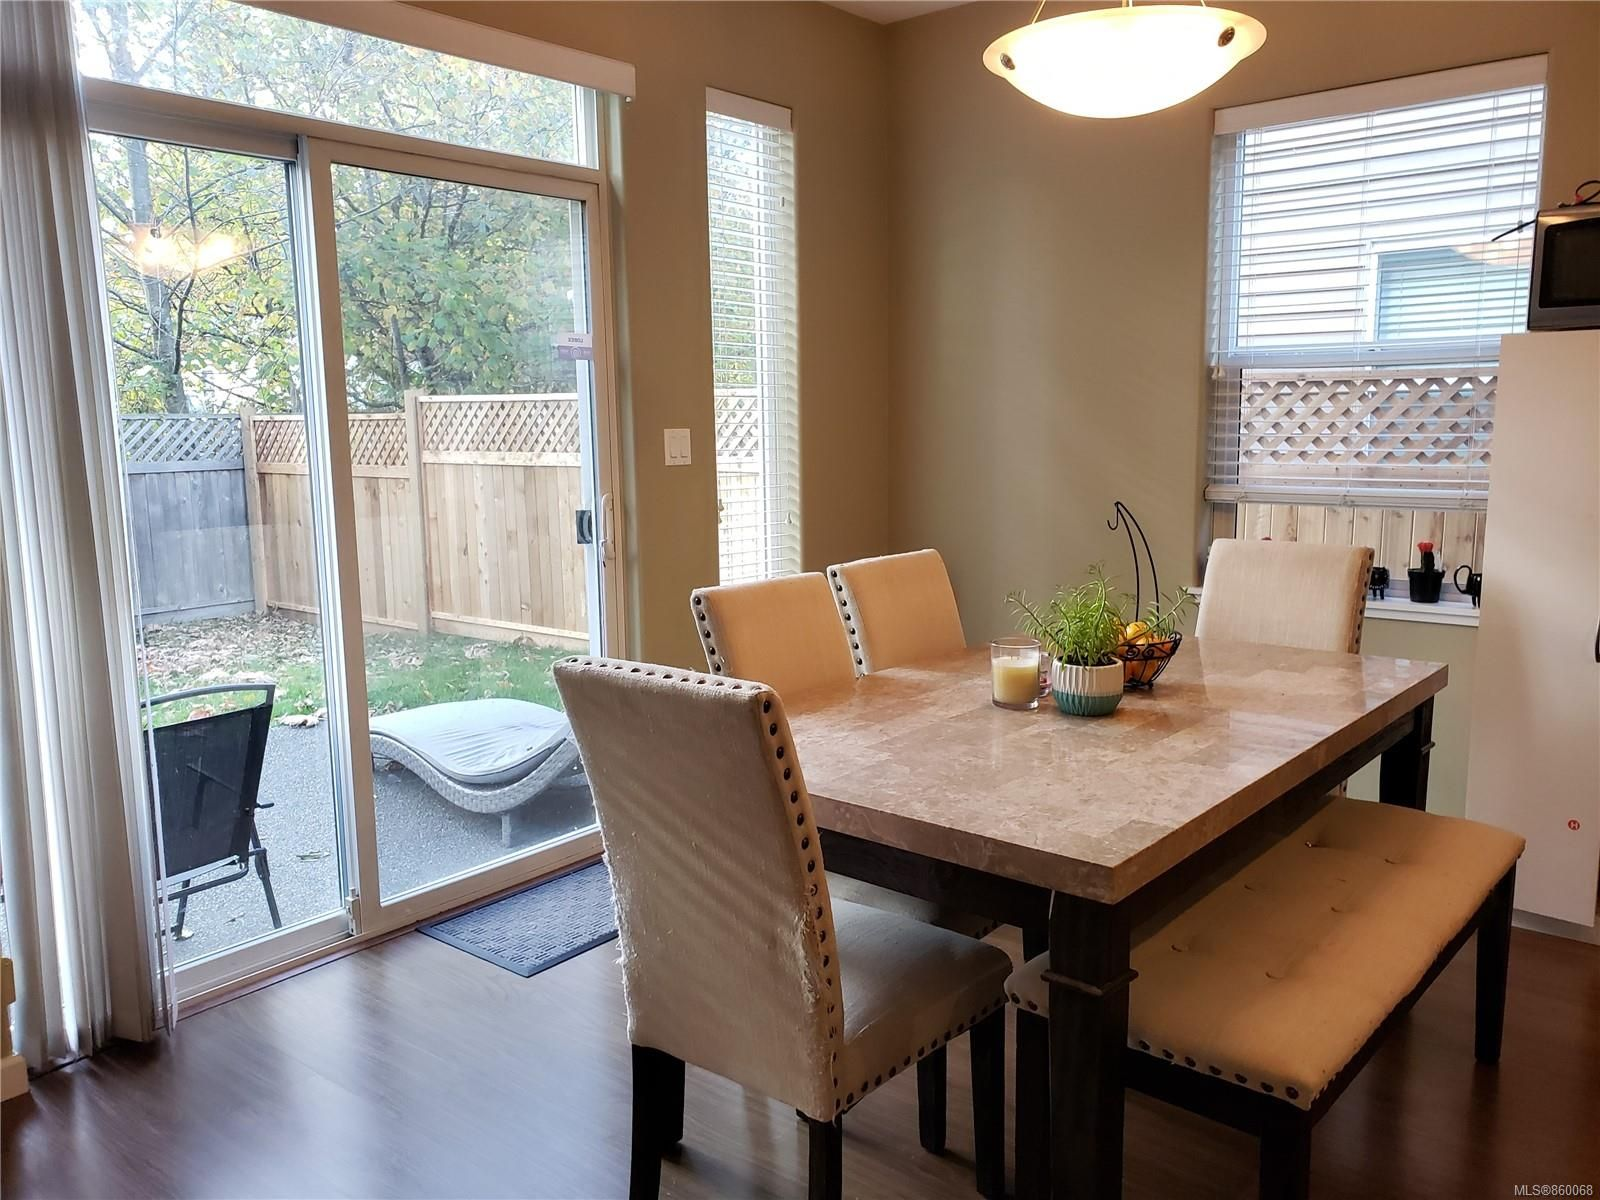 Photo 10: Photos: 105 2787 1st St in Courtenay: CV Courtenay City House for sale (Comox Valley)  : MLS®# 860068